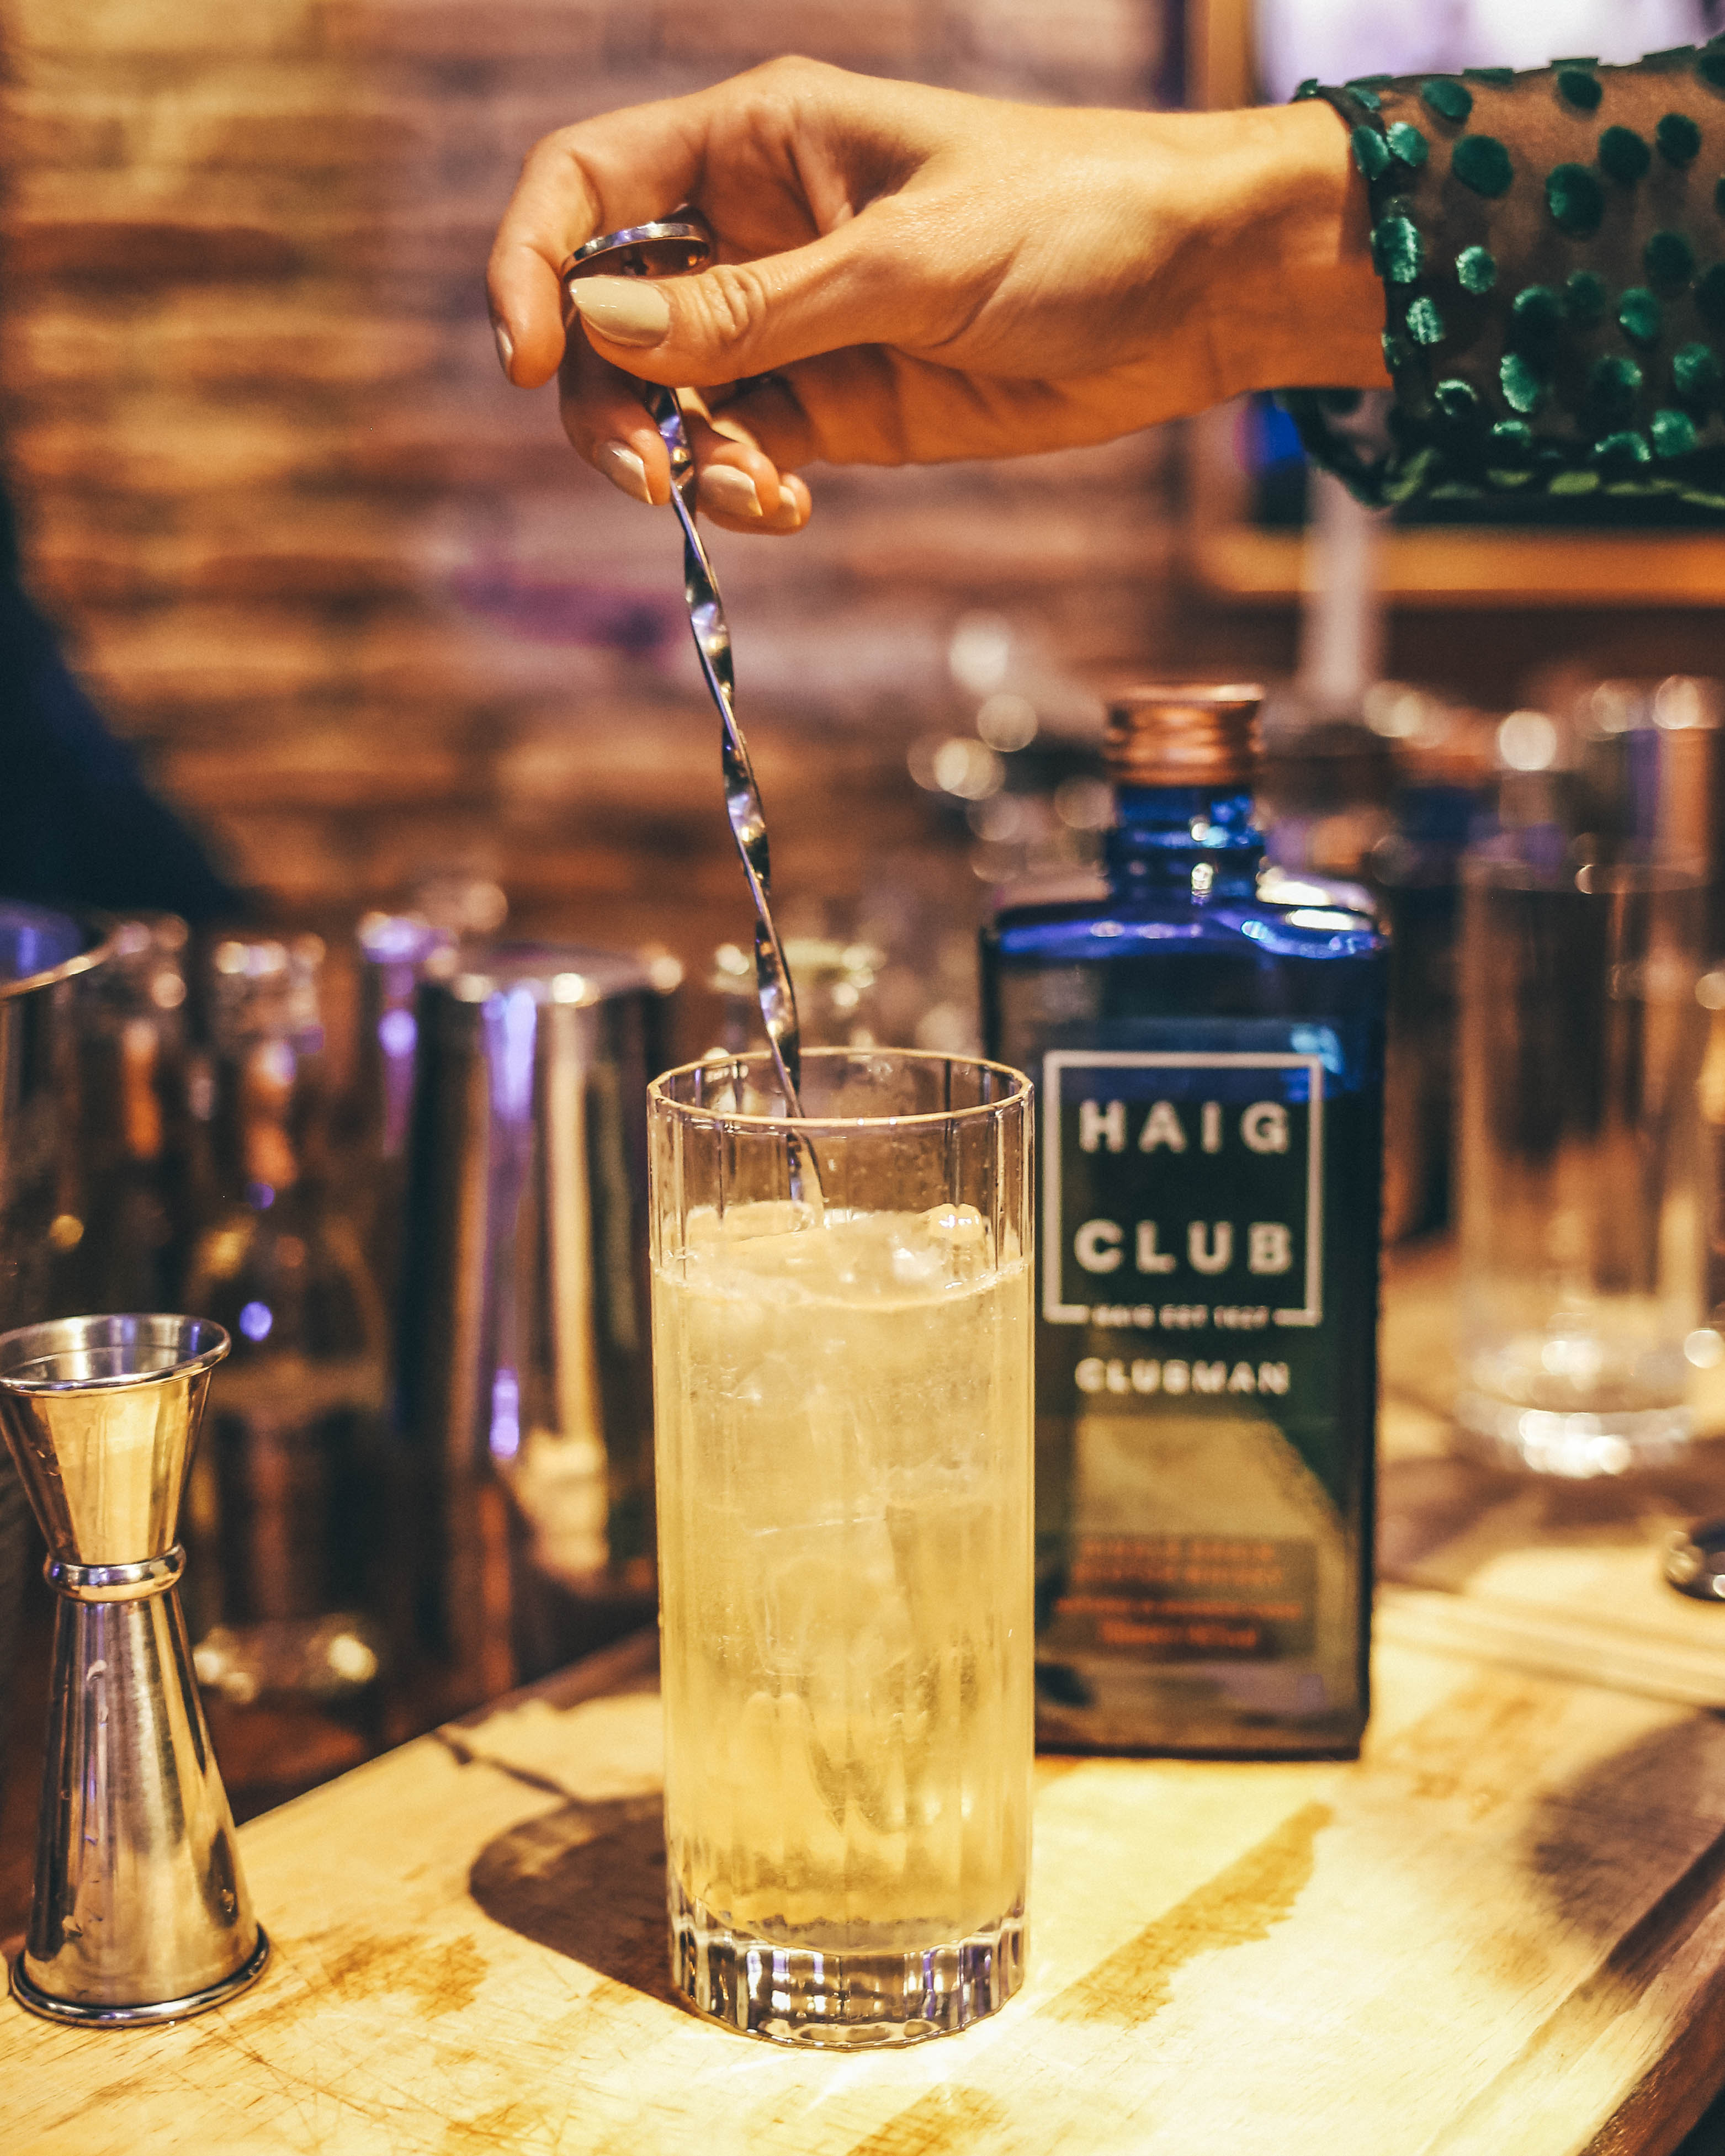 Haig club cocktails